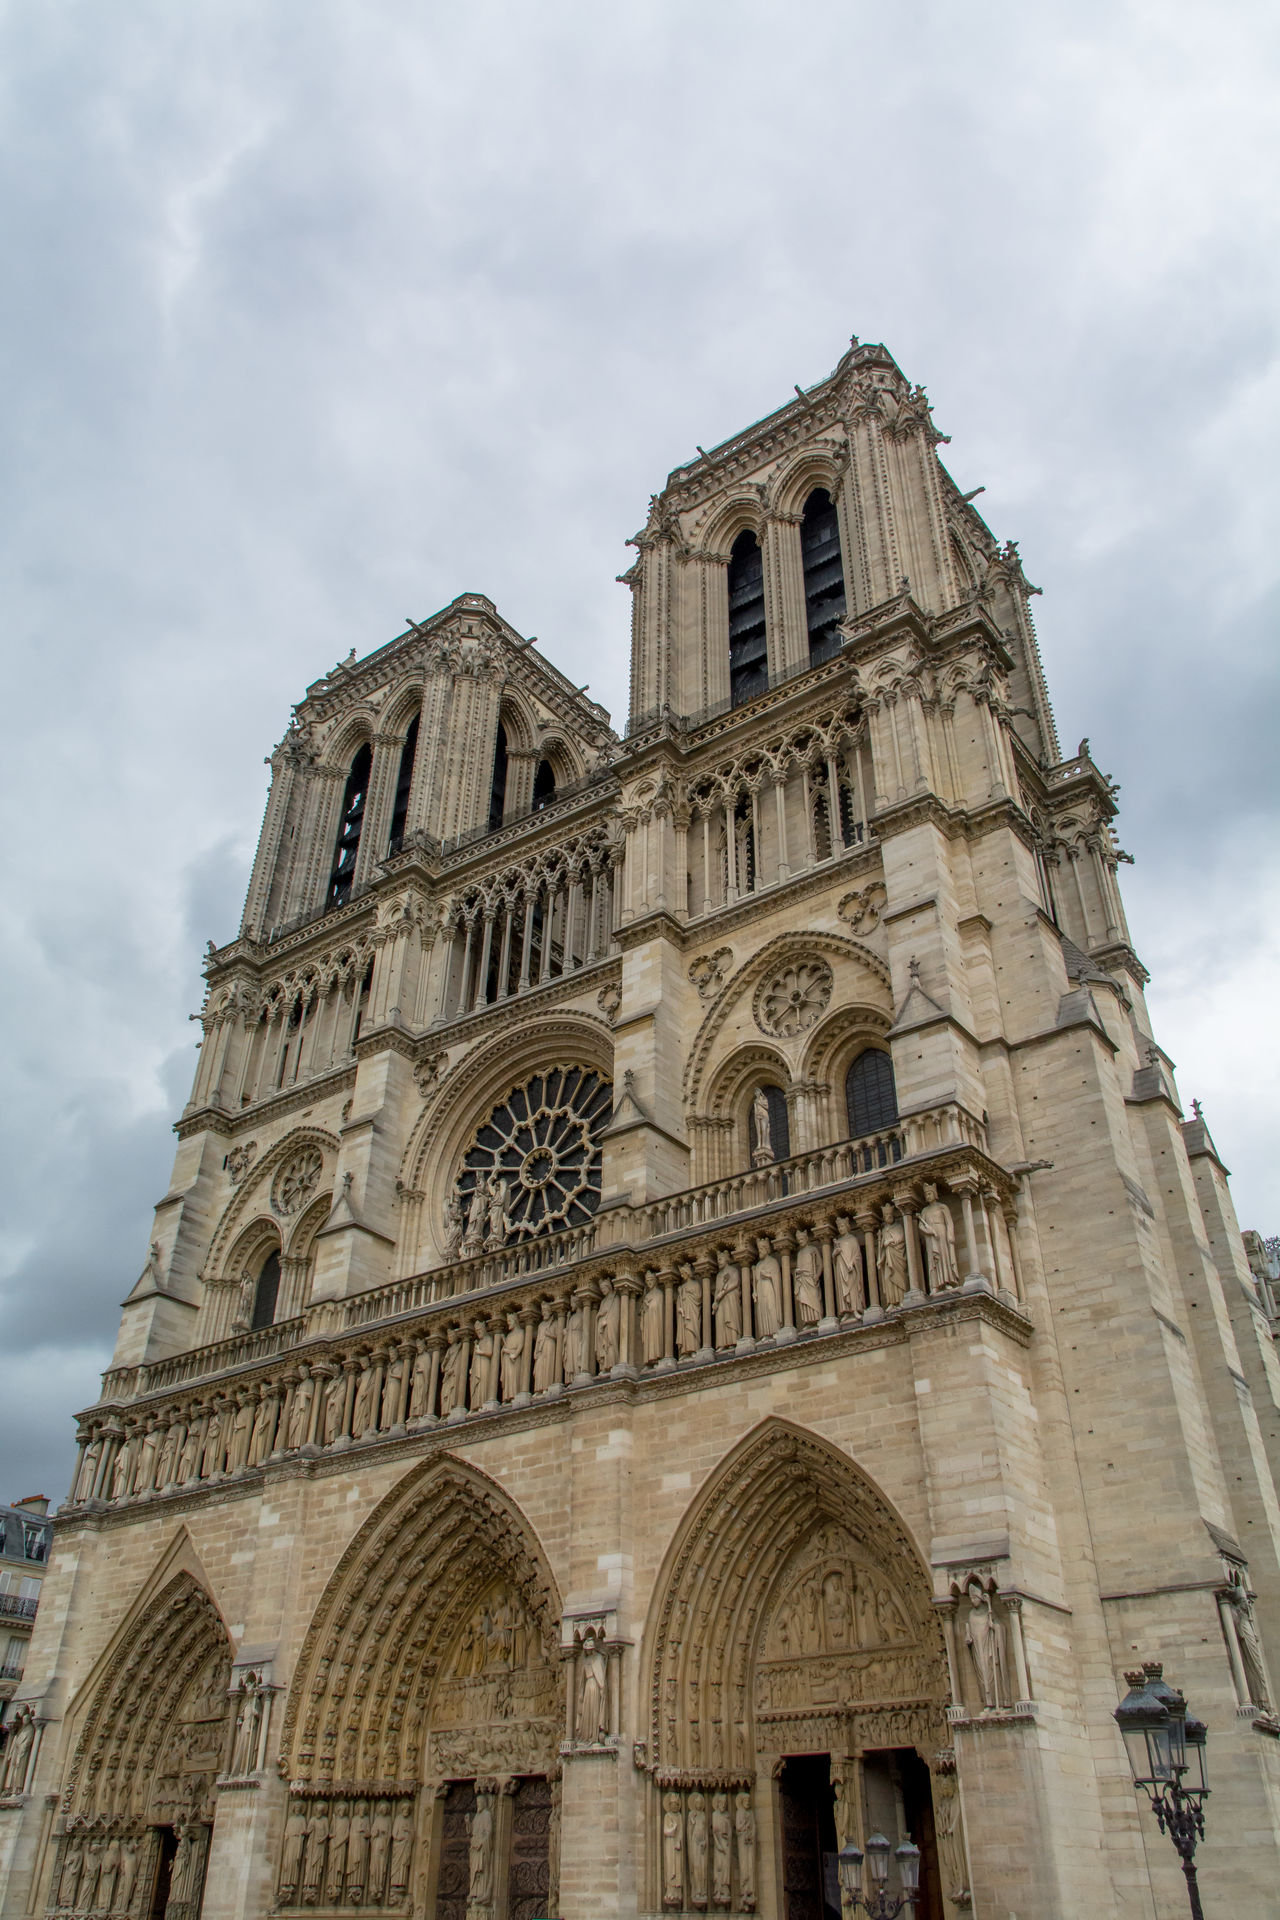 Architecture Archs Building Exterior Built Structure Cathedral Cloud - Sky Clouds Day Famous Place Façade Gothic History Low Angle View Low Angle View No People Notre Dame De Paris Outdoors Paris Place Of Worship Religion Sky Spirituality Towers Travel Destinations